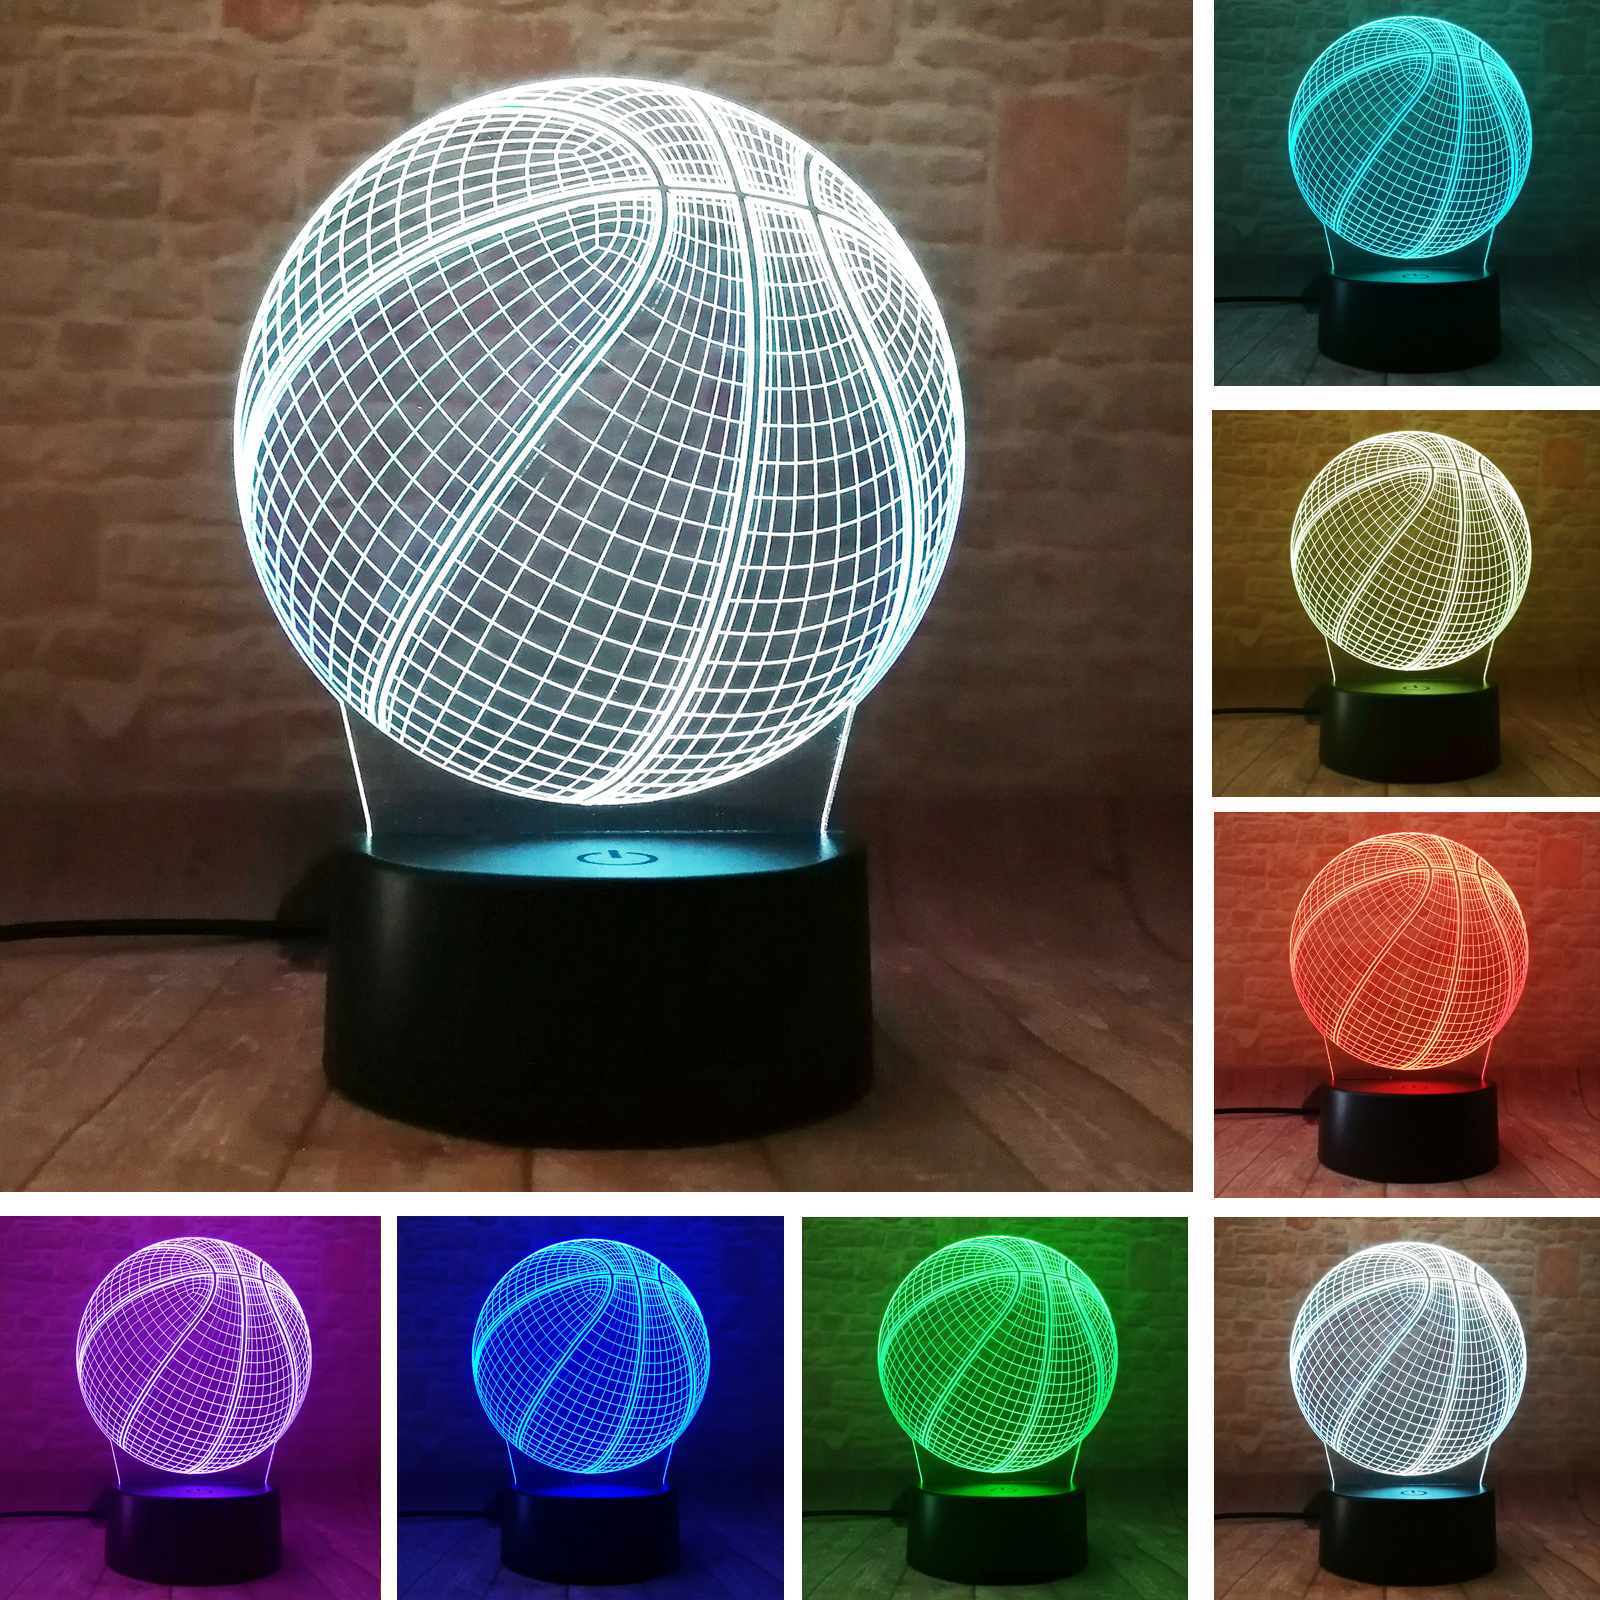 Basketball 3D Illusion Birthday Gift Lamp 7 Colors Auto Change Night Light Child Boys Man Gifts Toy for Basketball Sports Fans